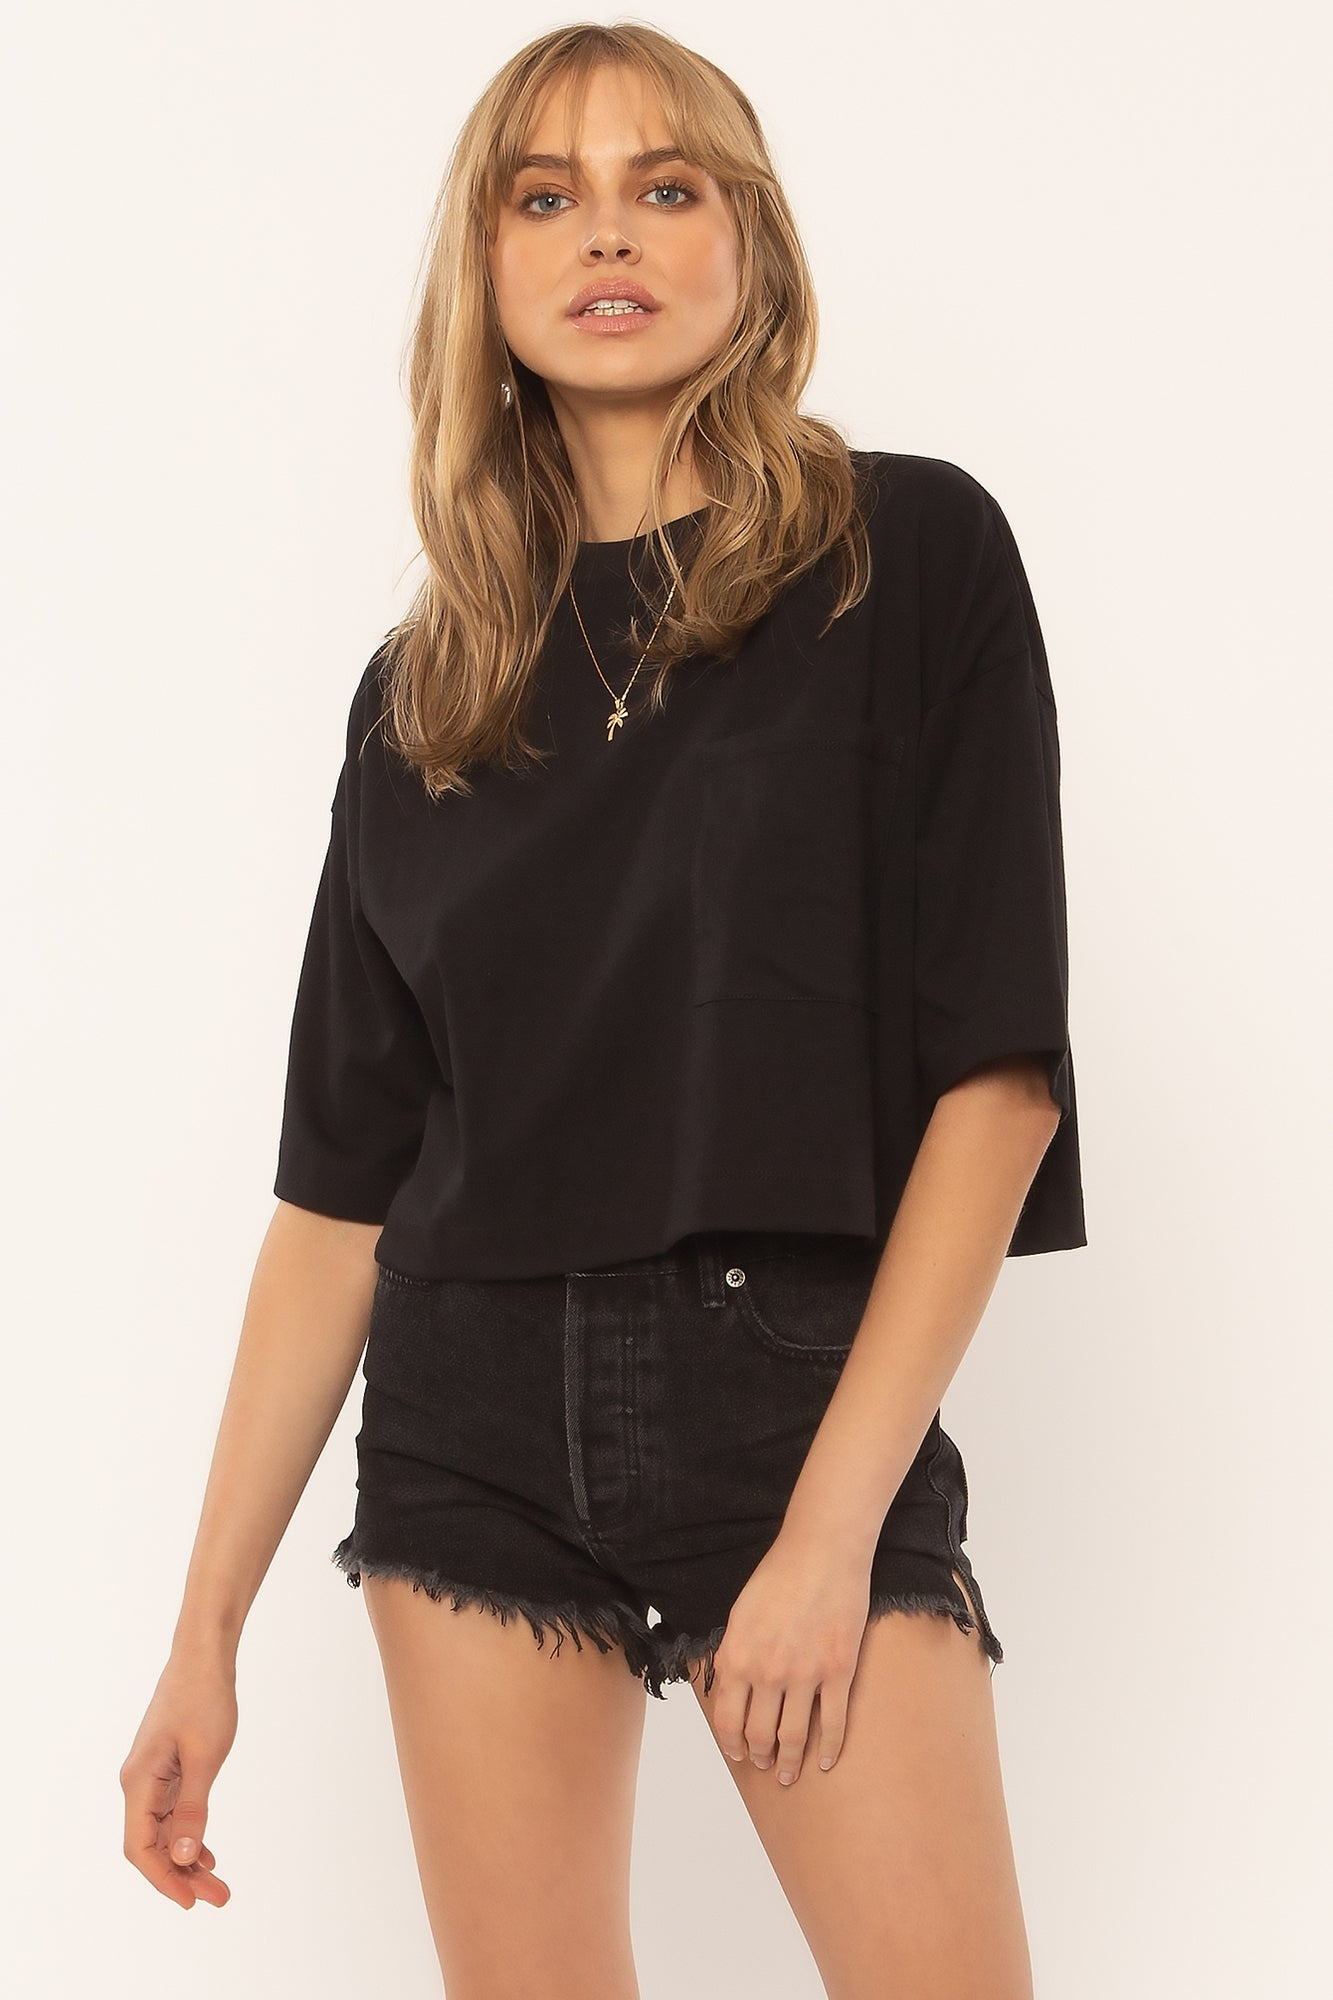 AMUSE SOCIETY W'S SHIRTS EASY LIFE KNIT TOP